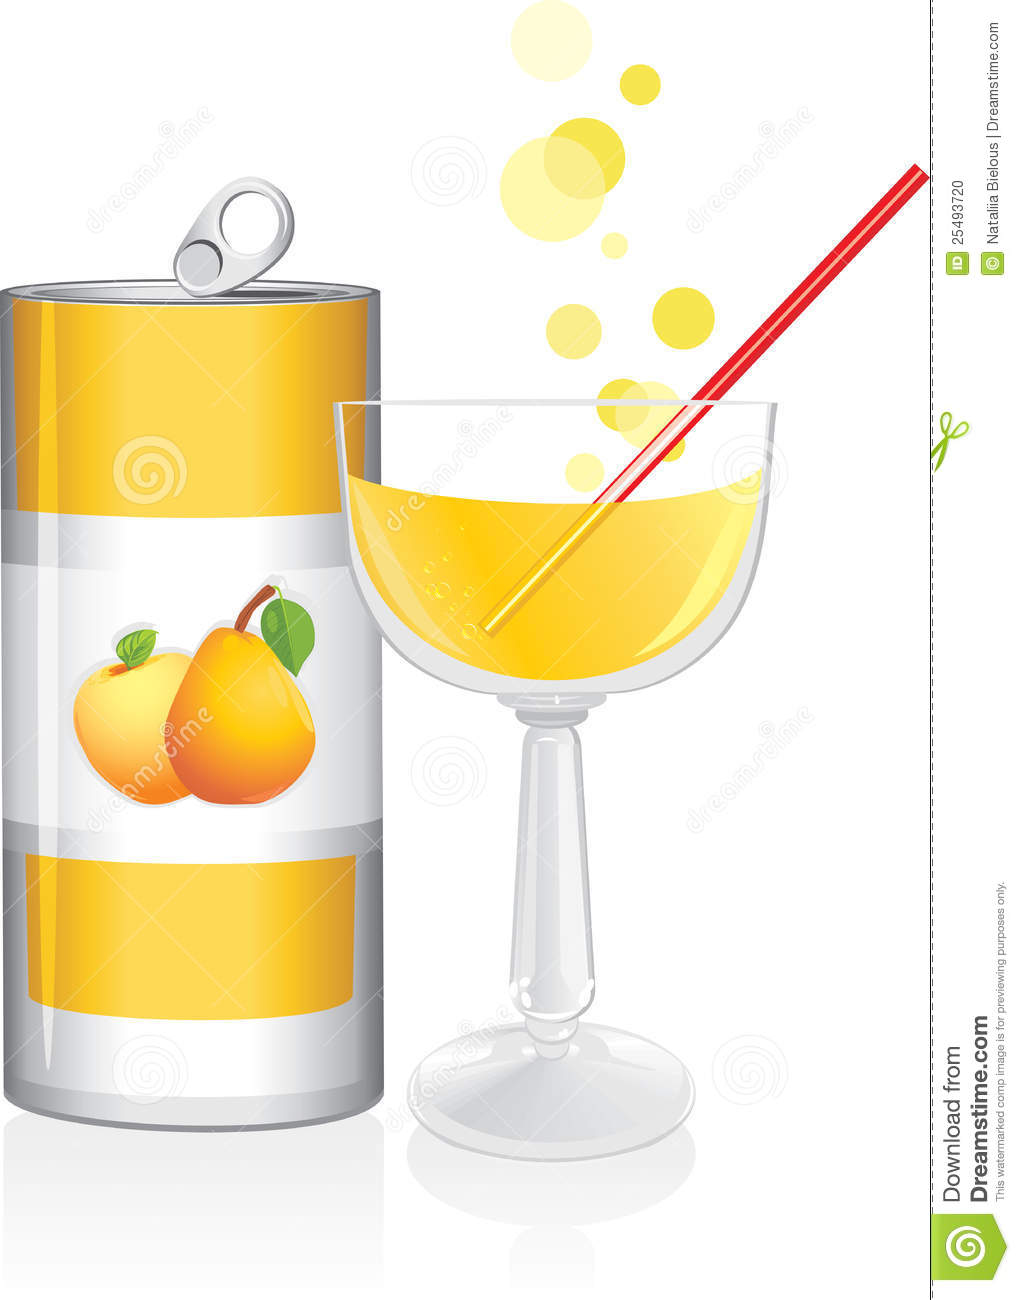 Aluminum Drink Can And Wine Glass With Fruit Juice Stock Photo - Image ...